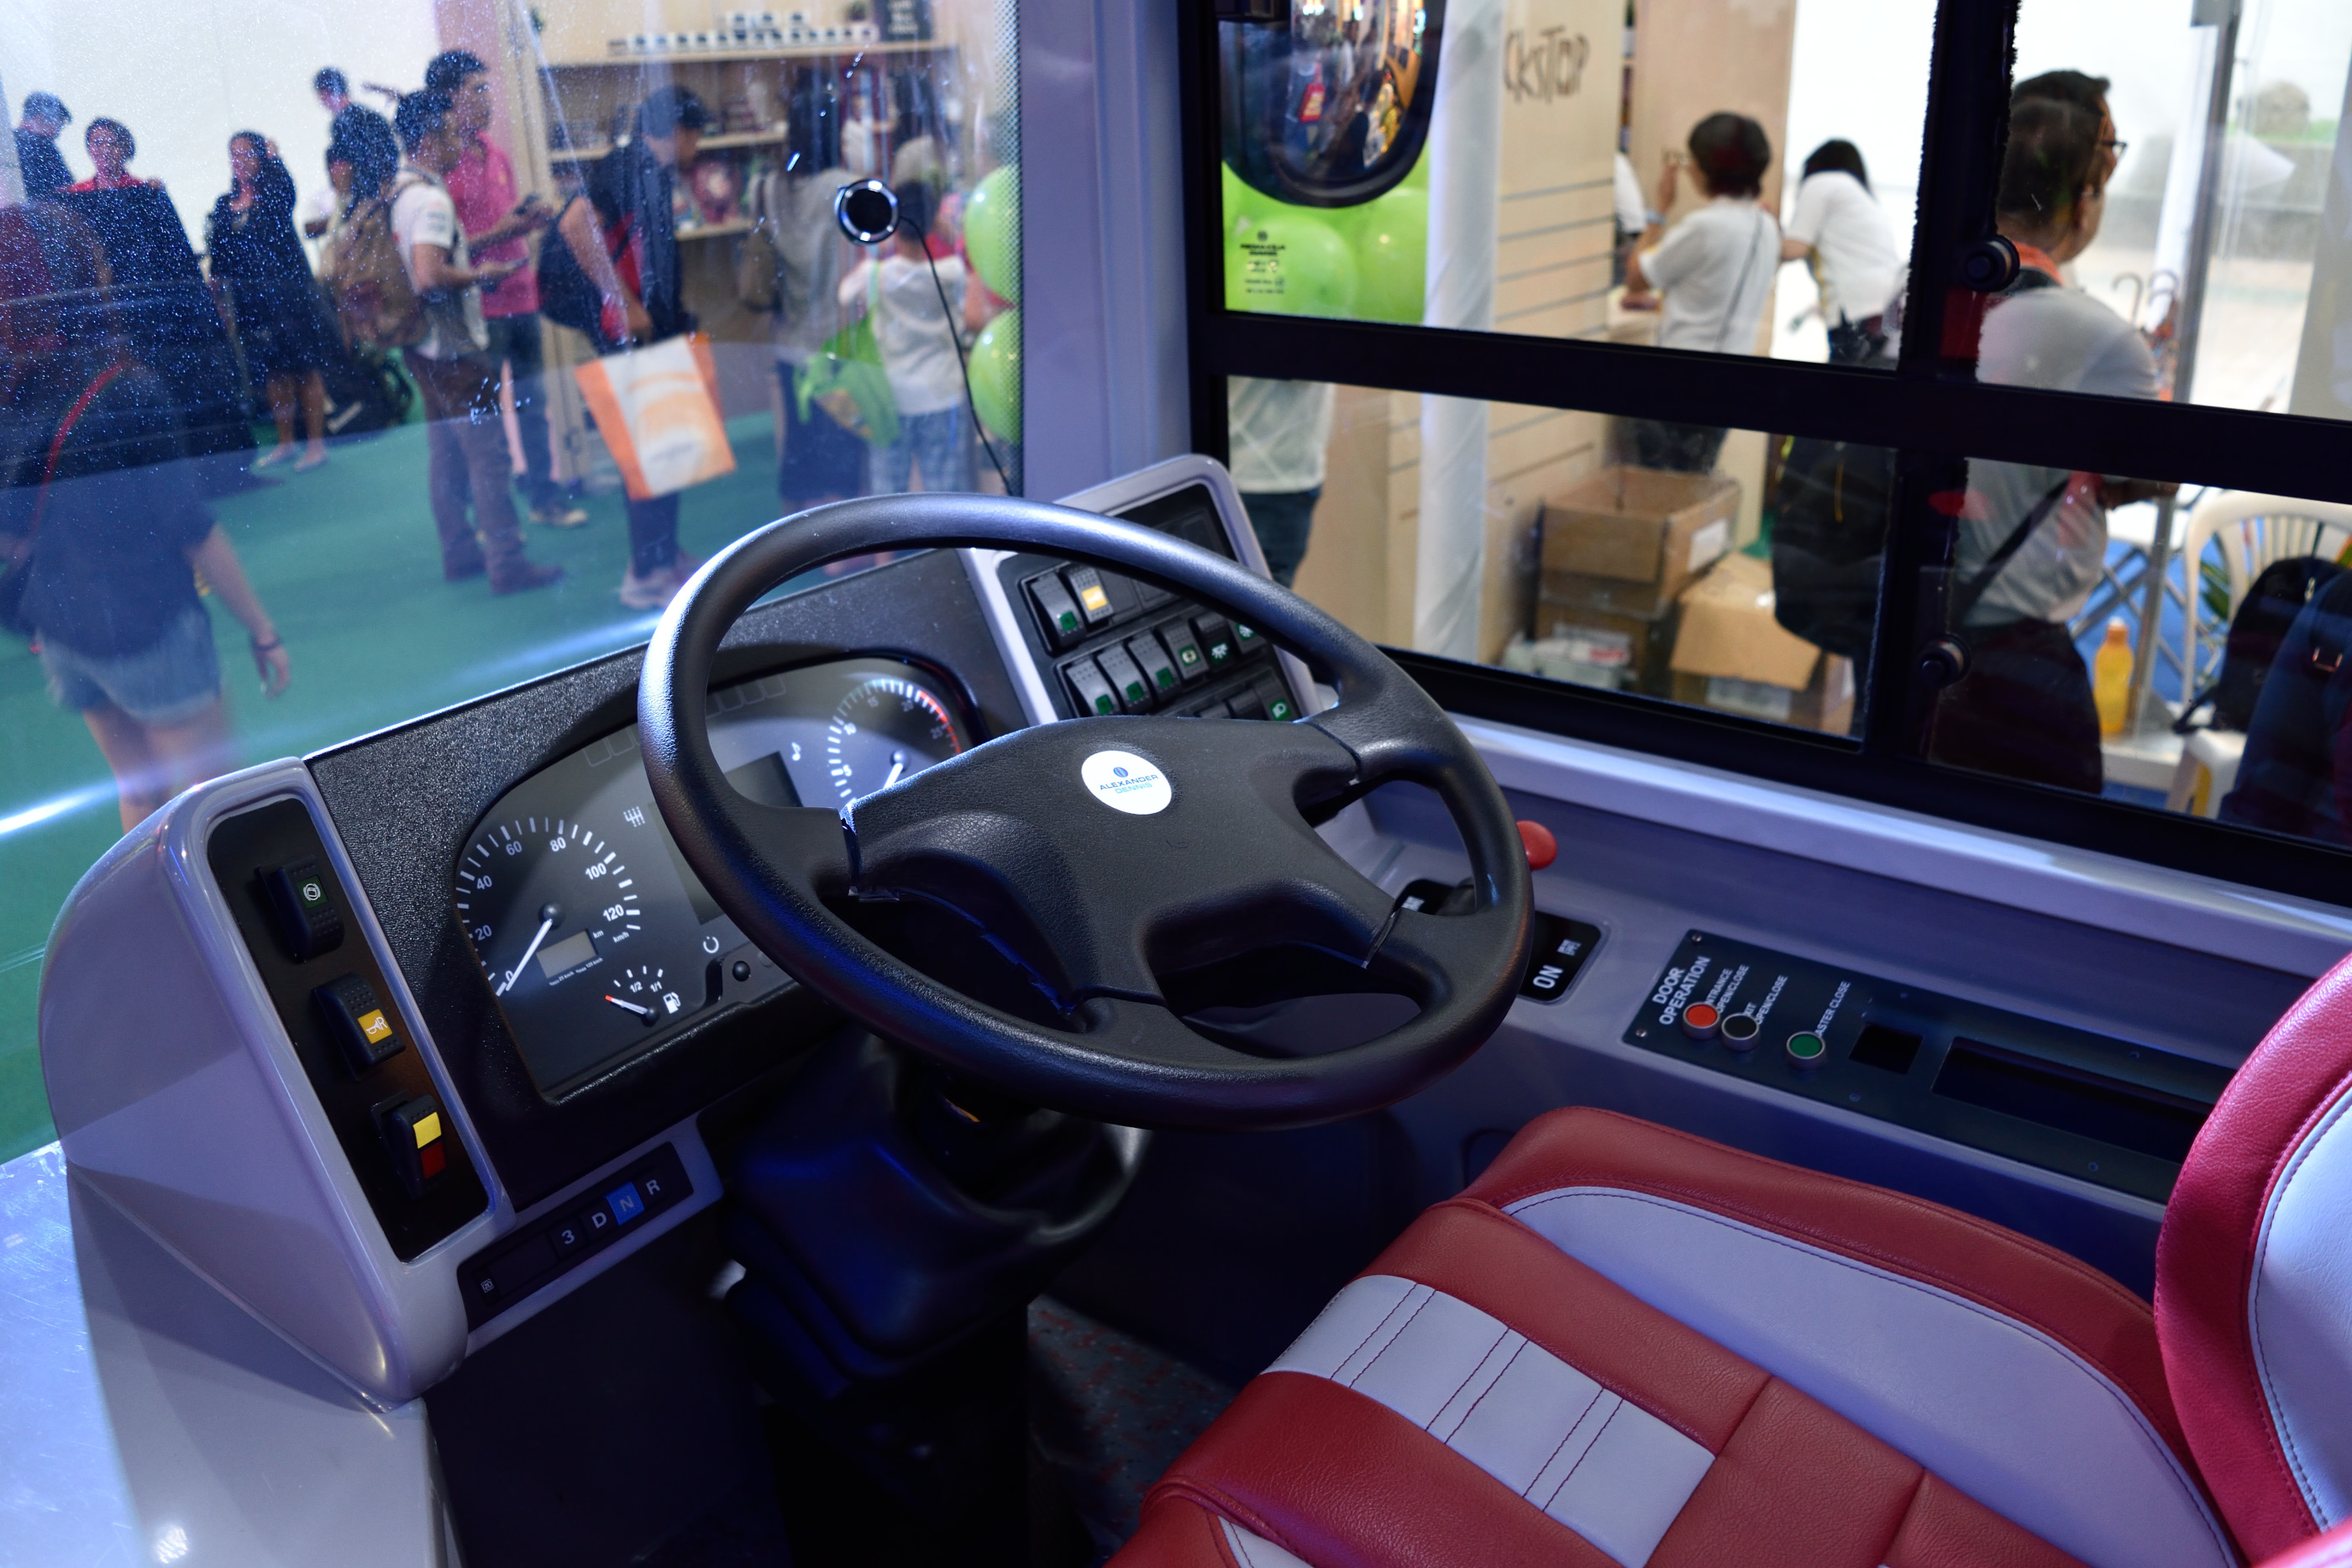 Bus A's dashboard.